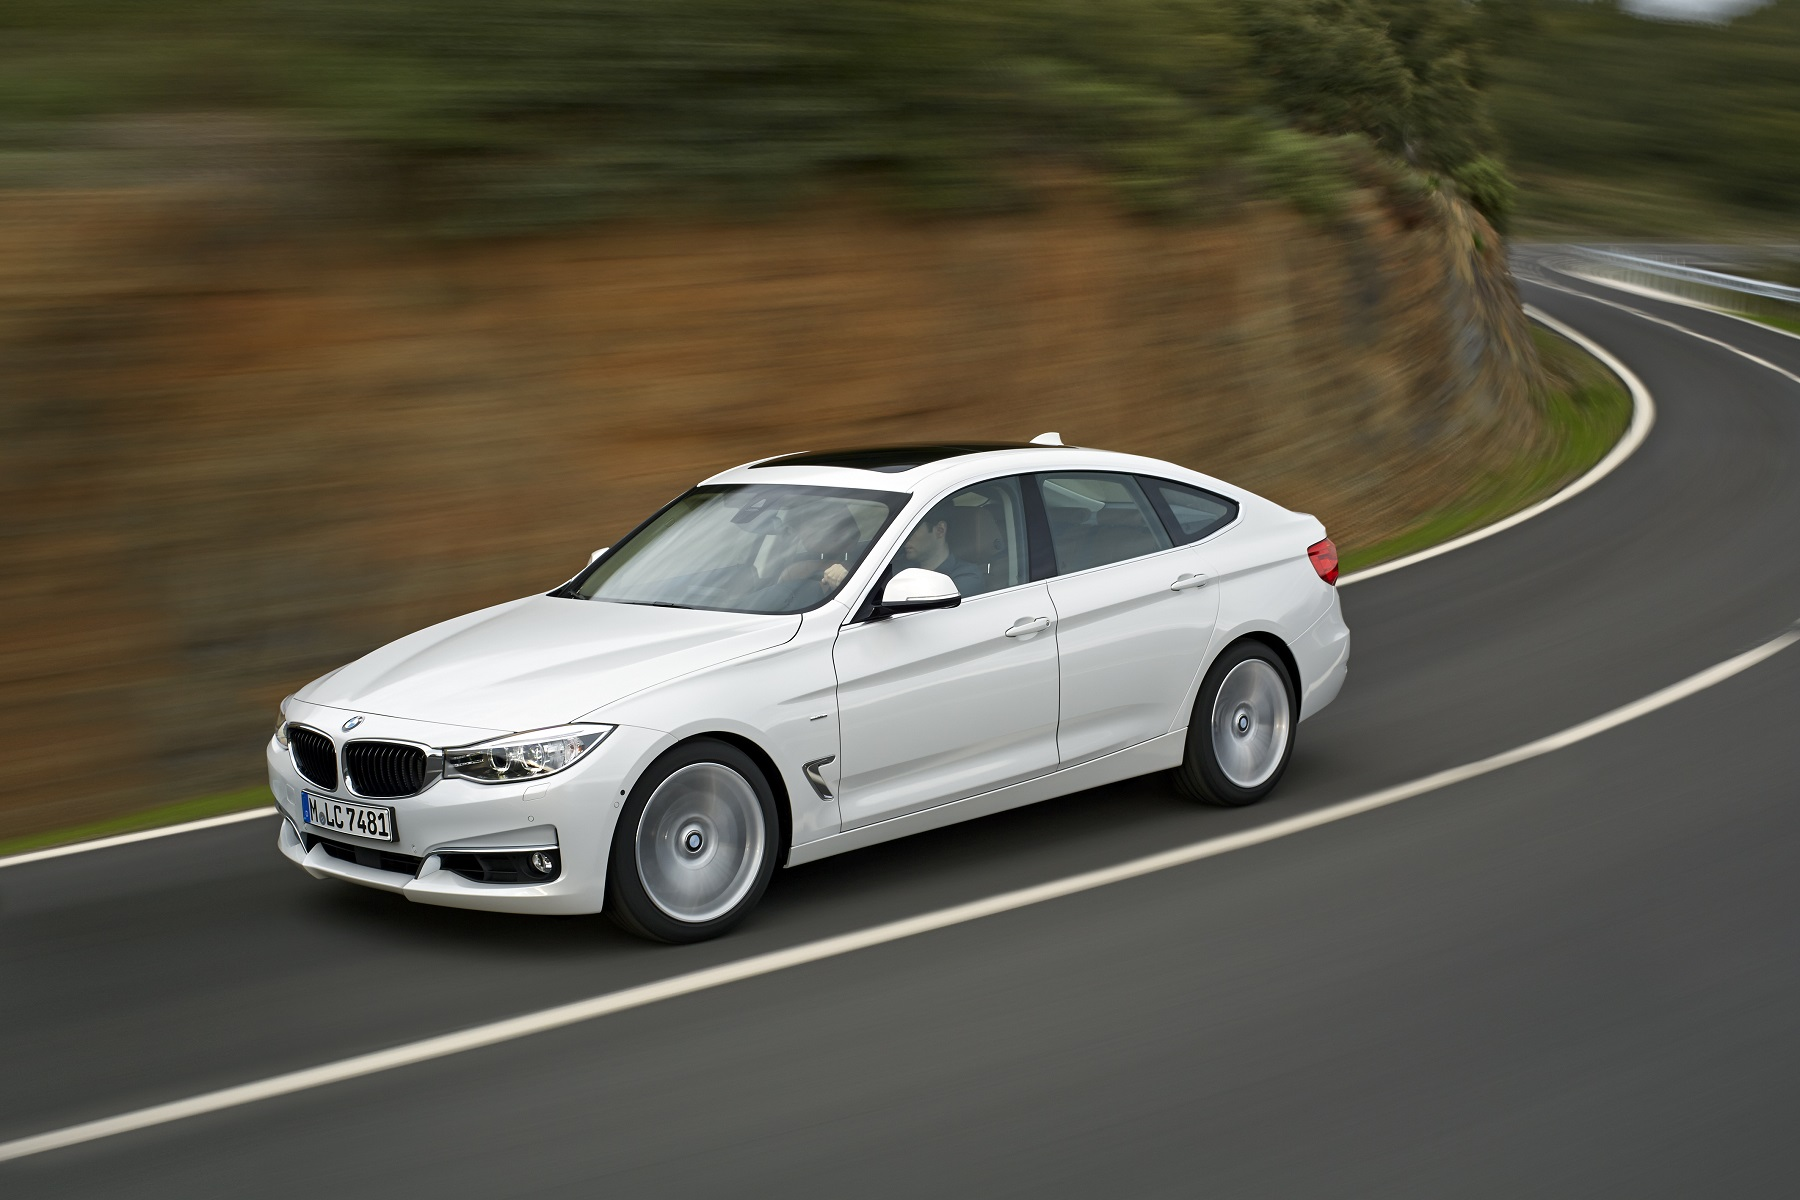 Manufacturer photo: The all-new BMW 3 Series Gran Turismo adds an innovative new concept to the 3 Series line